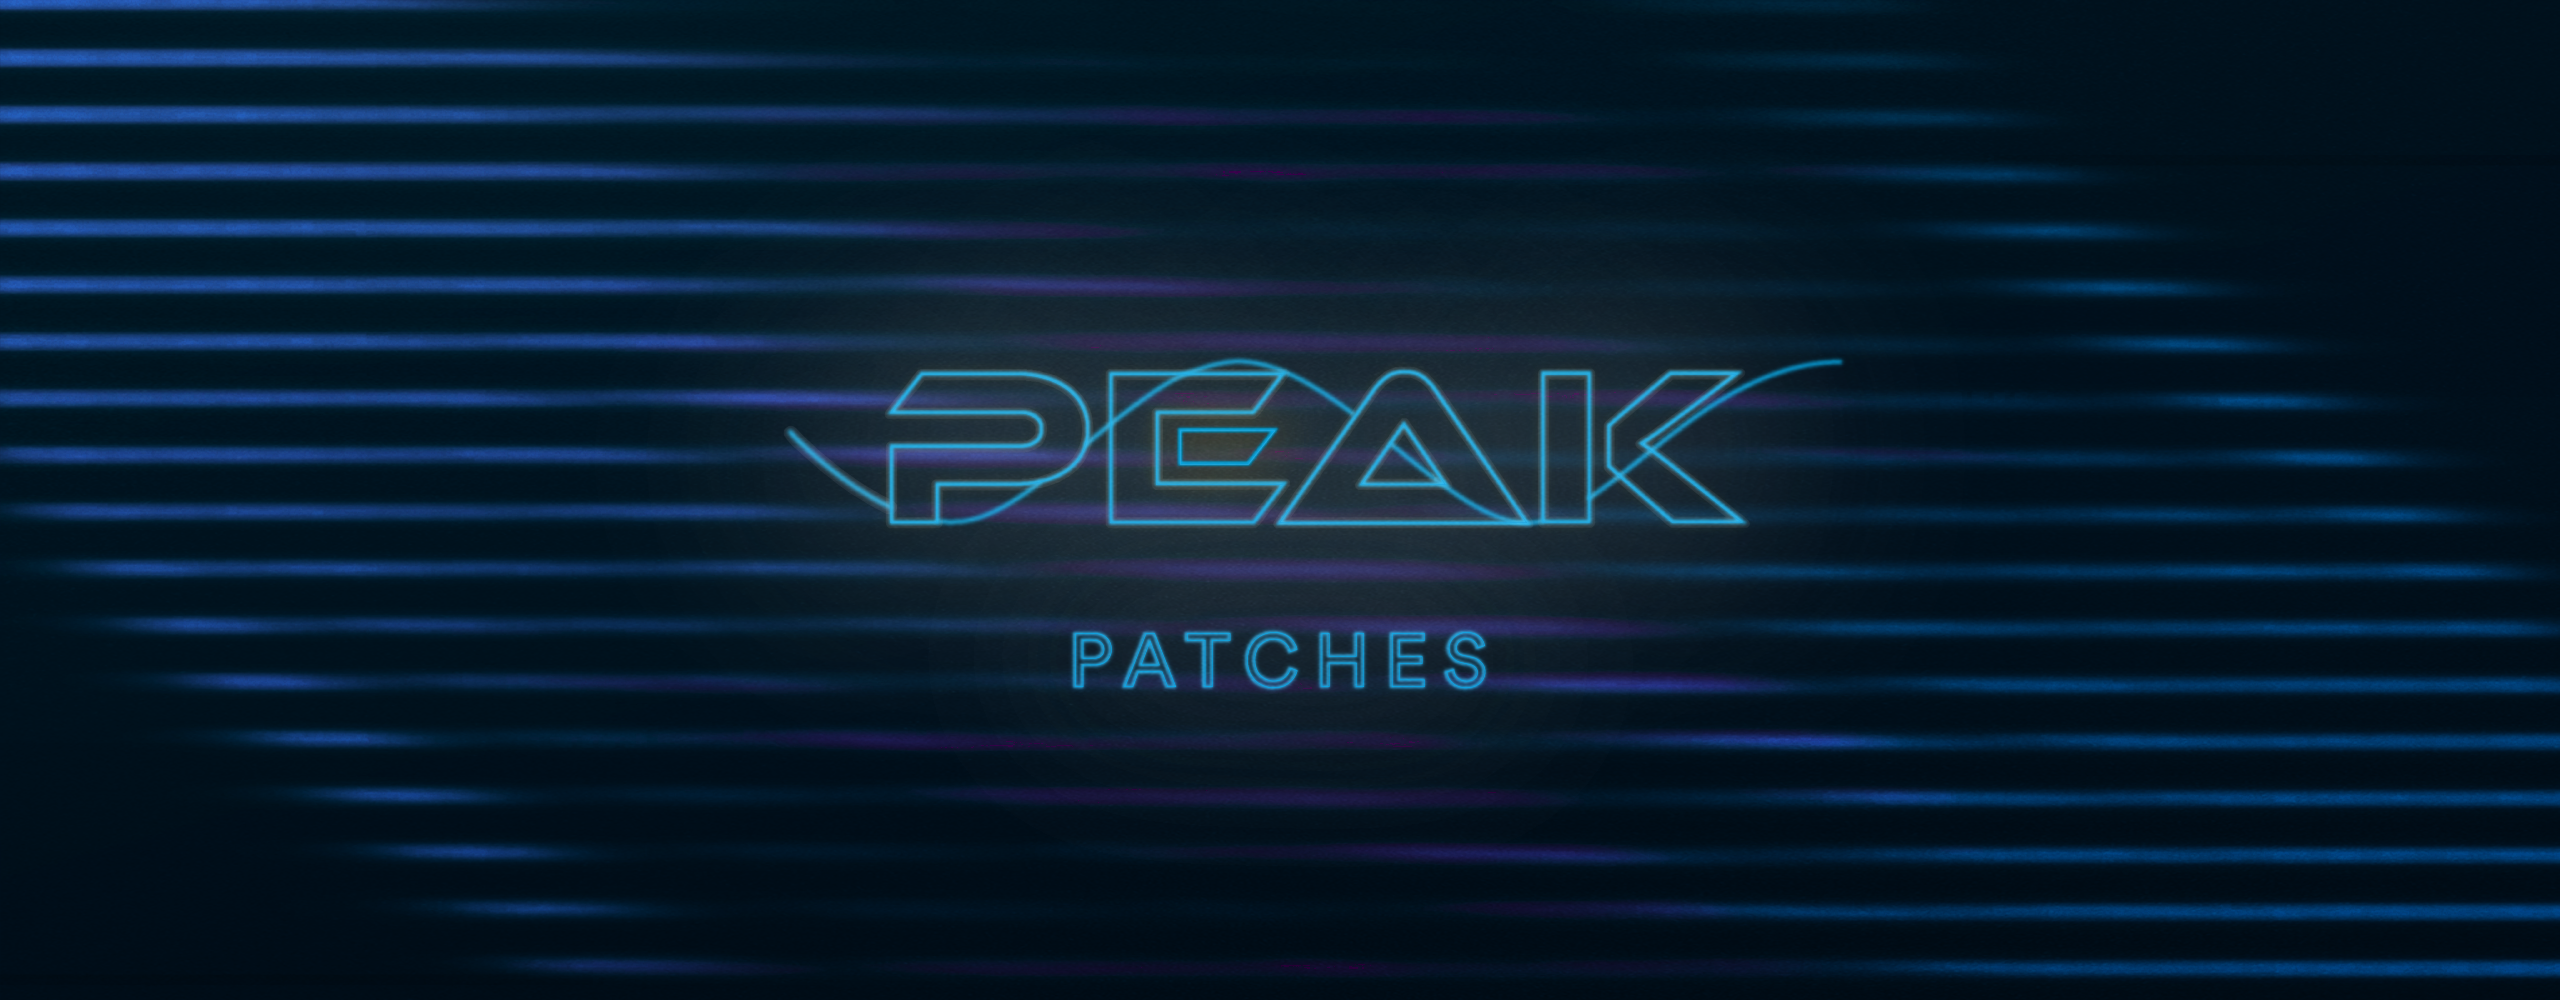 Peak Patches - News Story Teaser